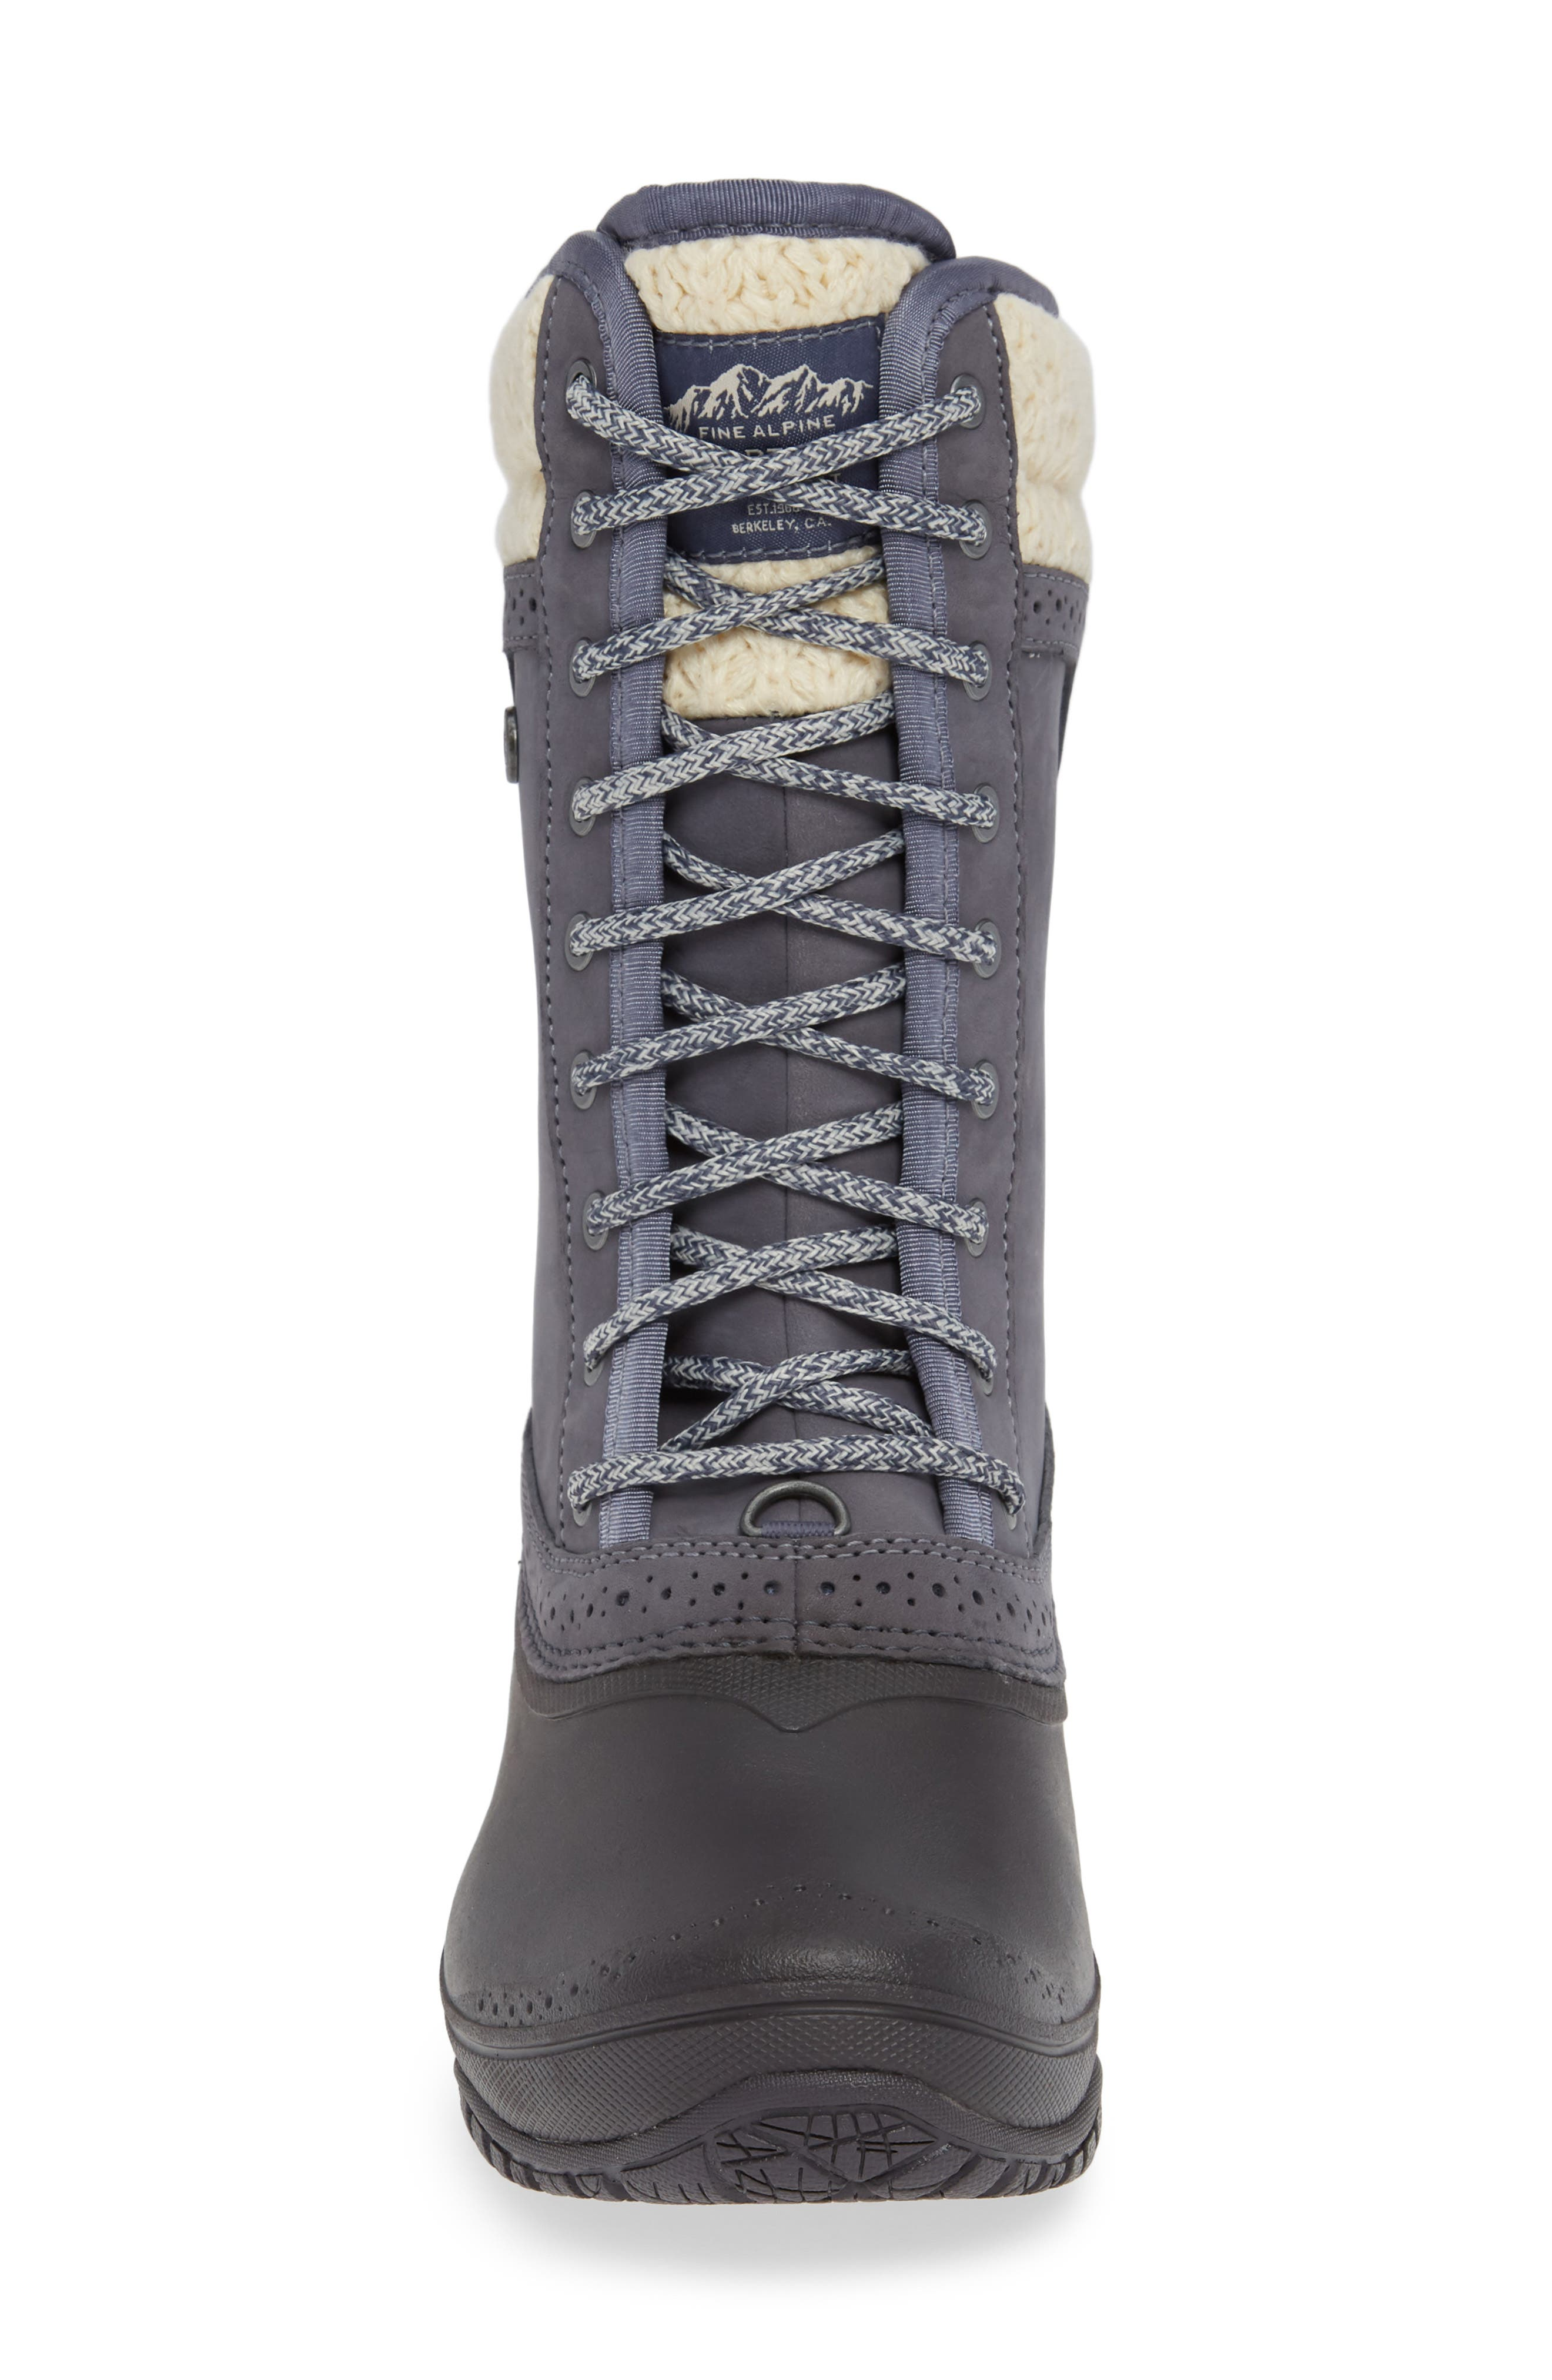 Shellista Waterproof Insulated Snow Boot,                             Alternate thumbnail 6, color,                             Grisaille Grey/ Vintage White